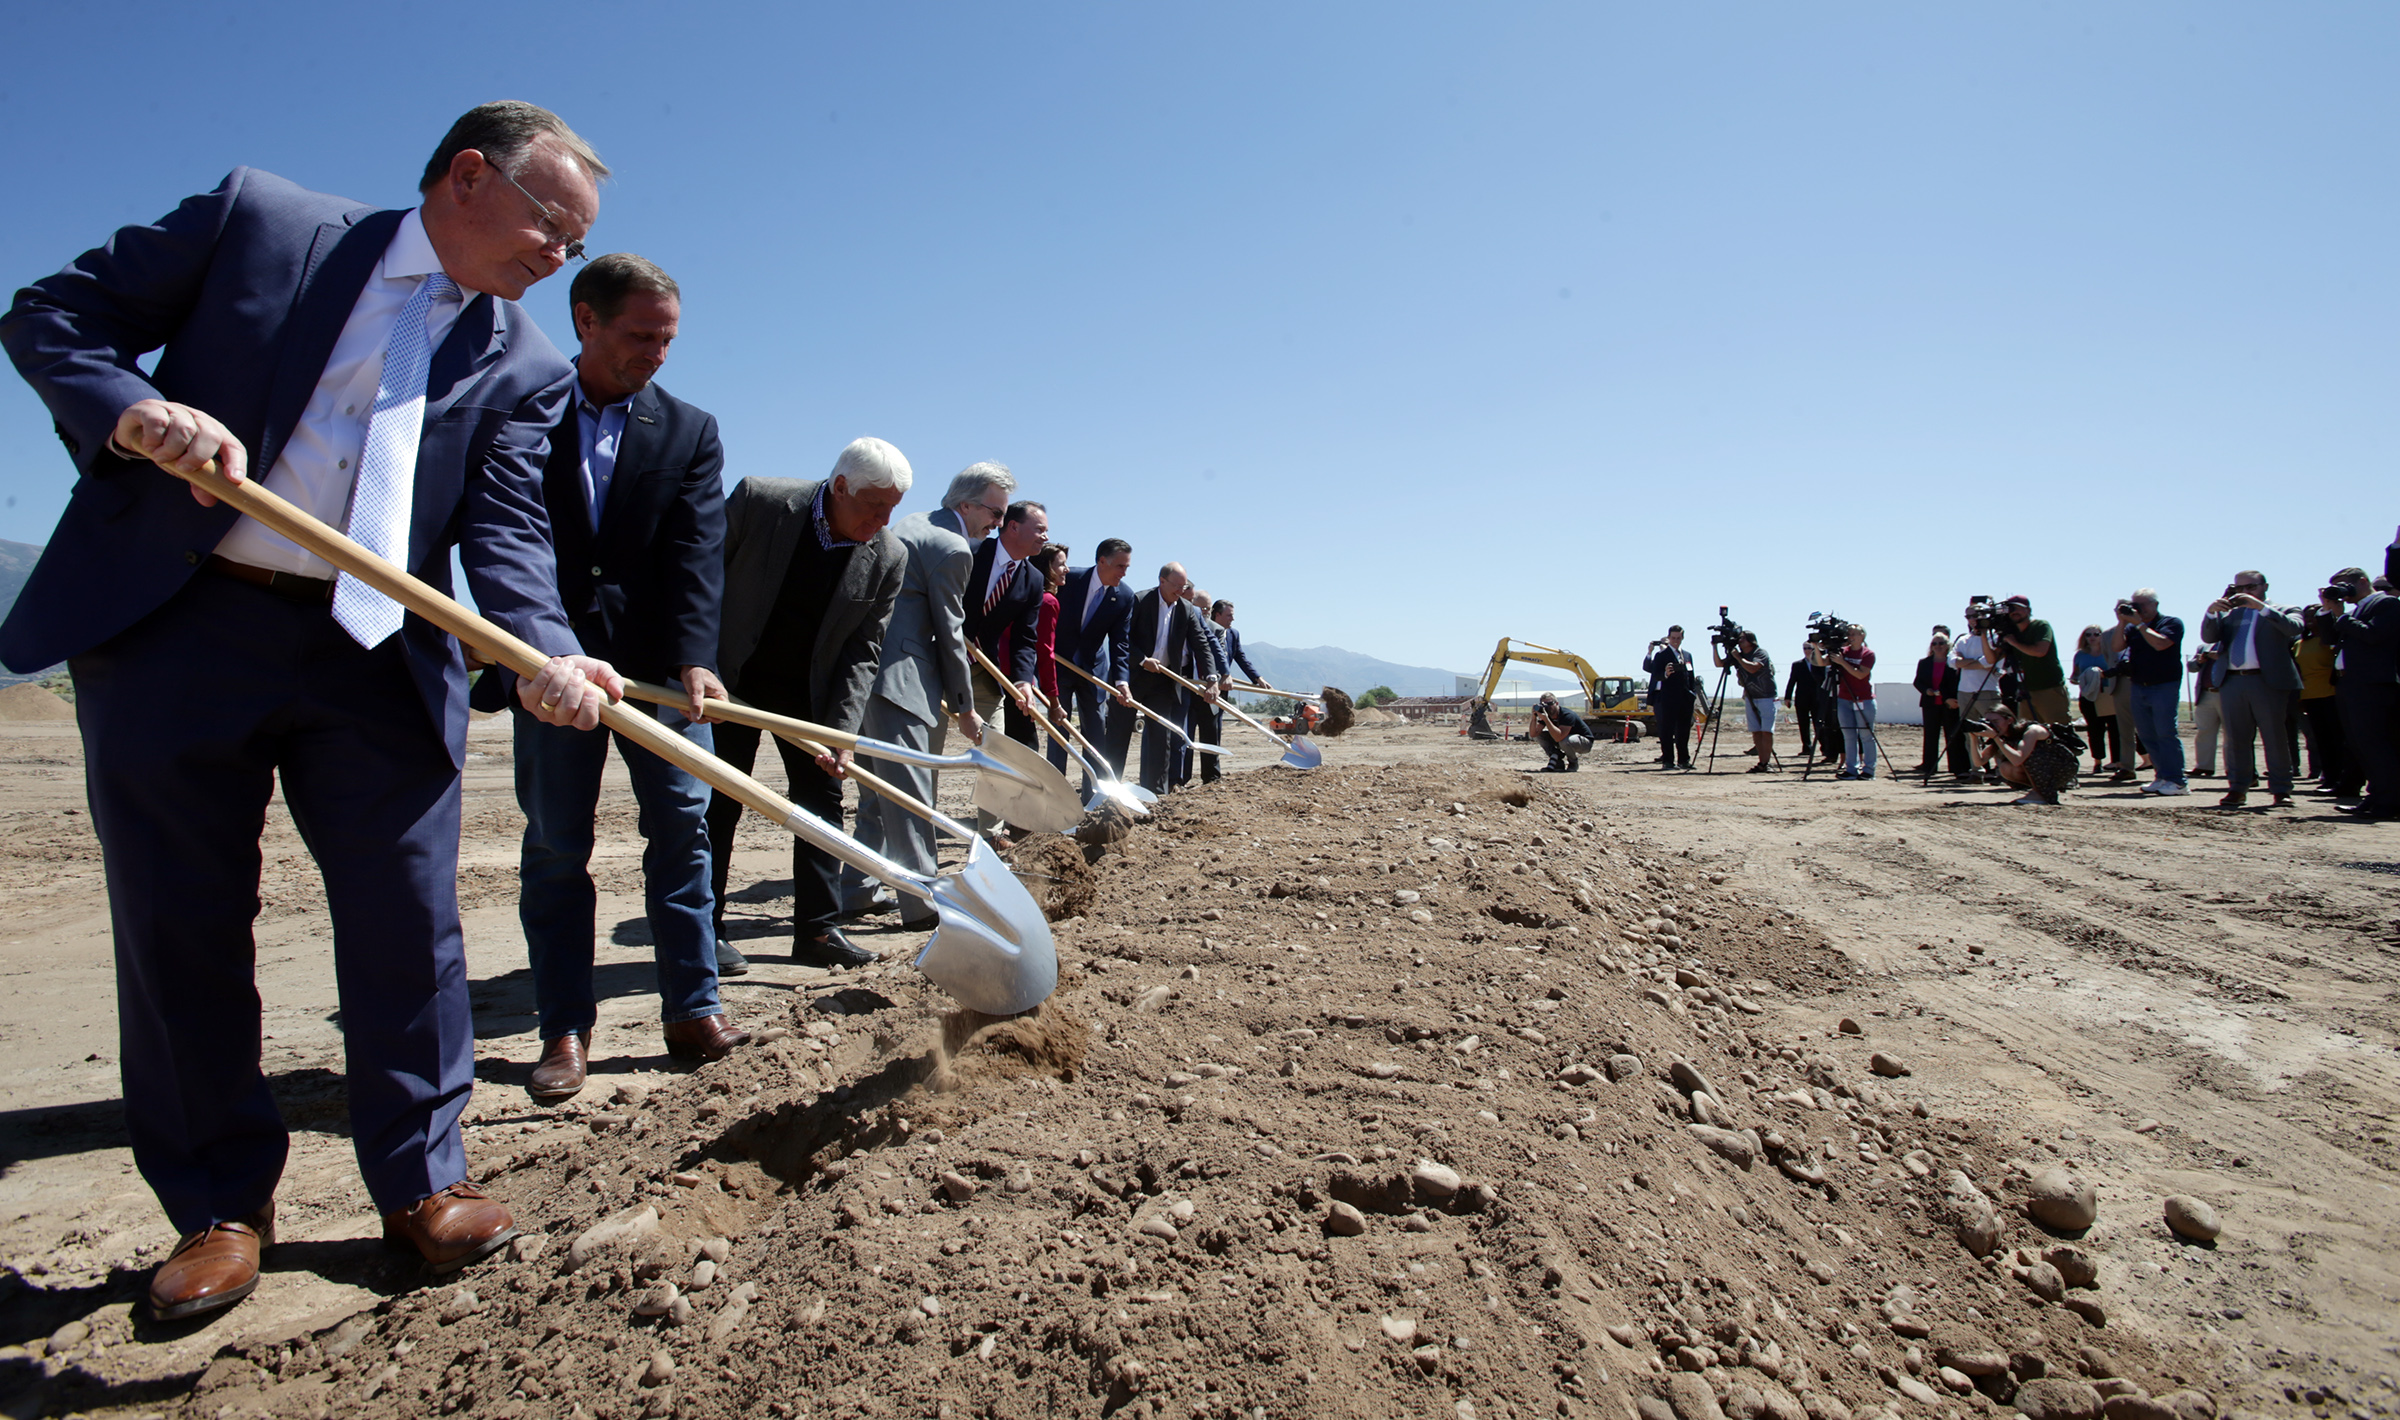 Officials uses shovels to symbolically break ground as Northrop Grumman begins work on a missile defense development facility in Roy on Tuesday, Aug. 27, 2019.